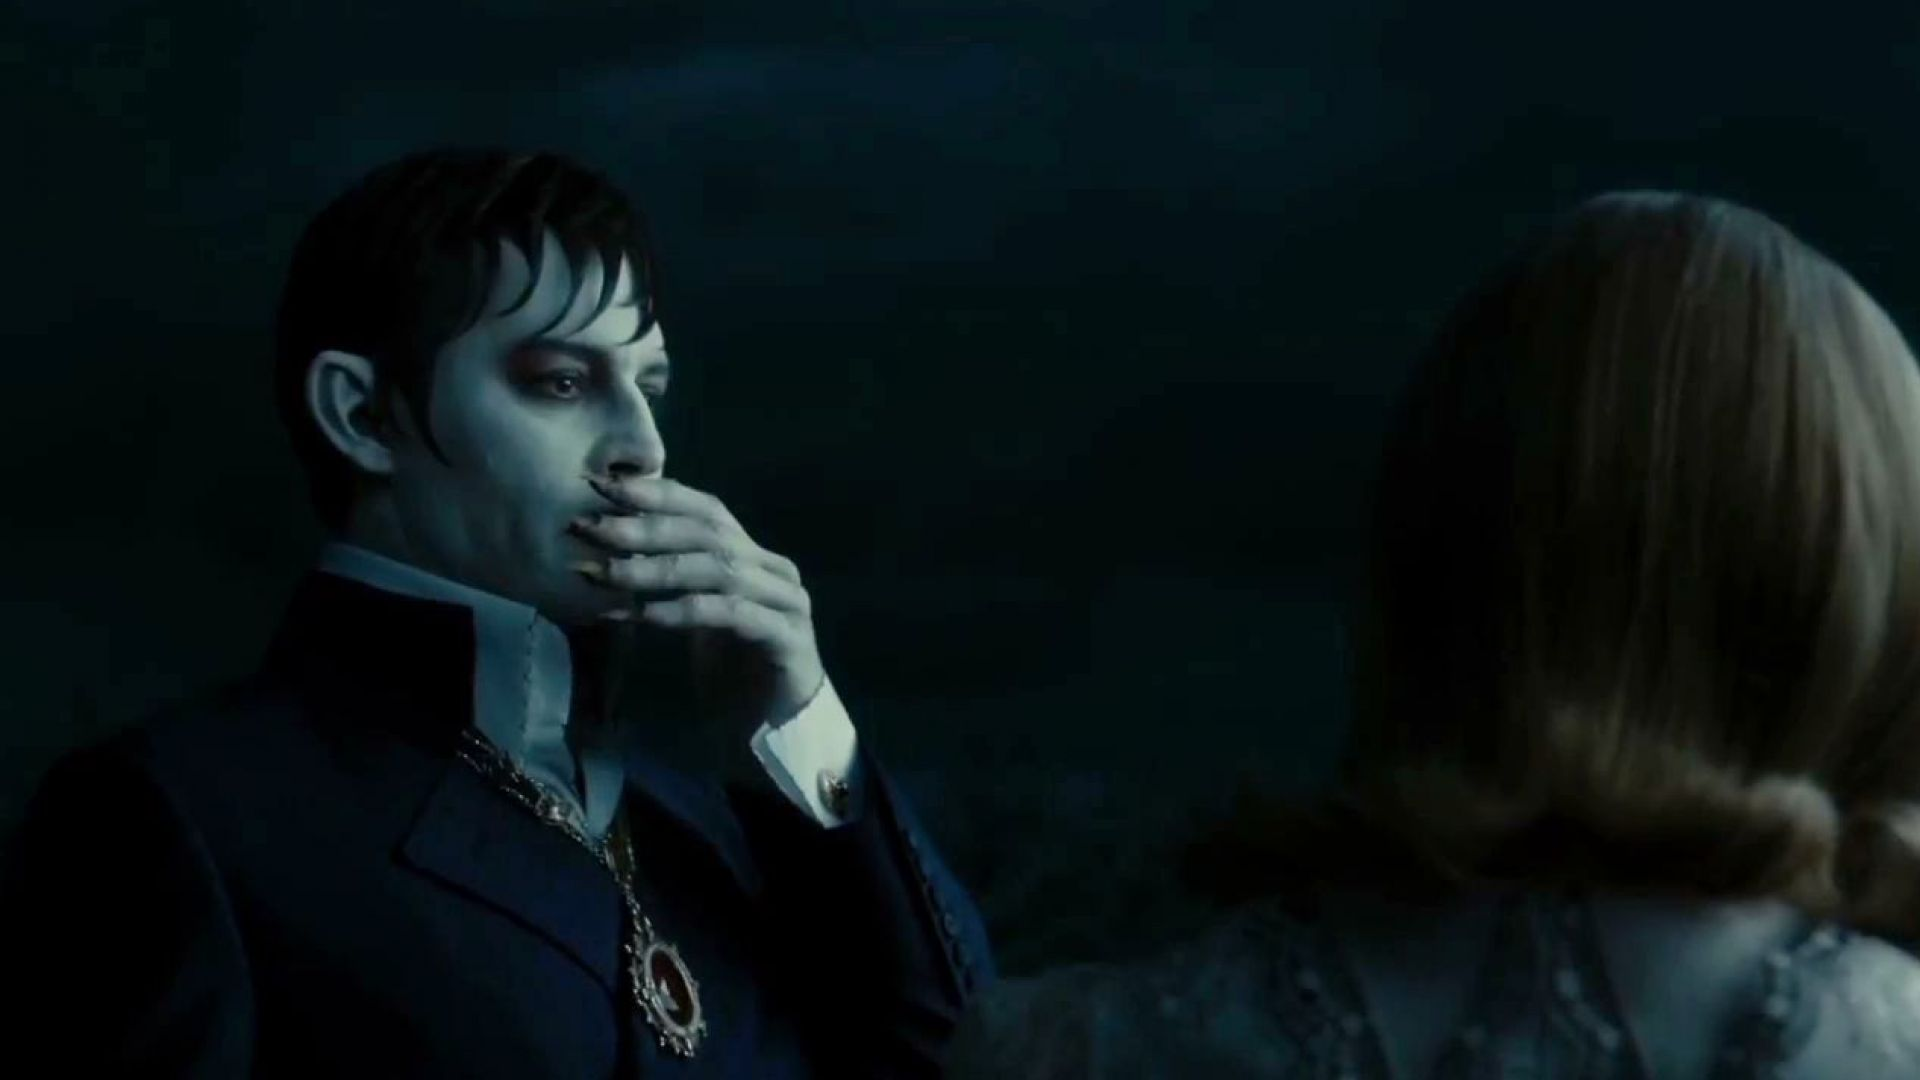 Oh, my dear, has my scent offended thee? Dark Shadows